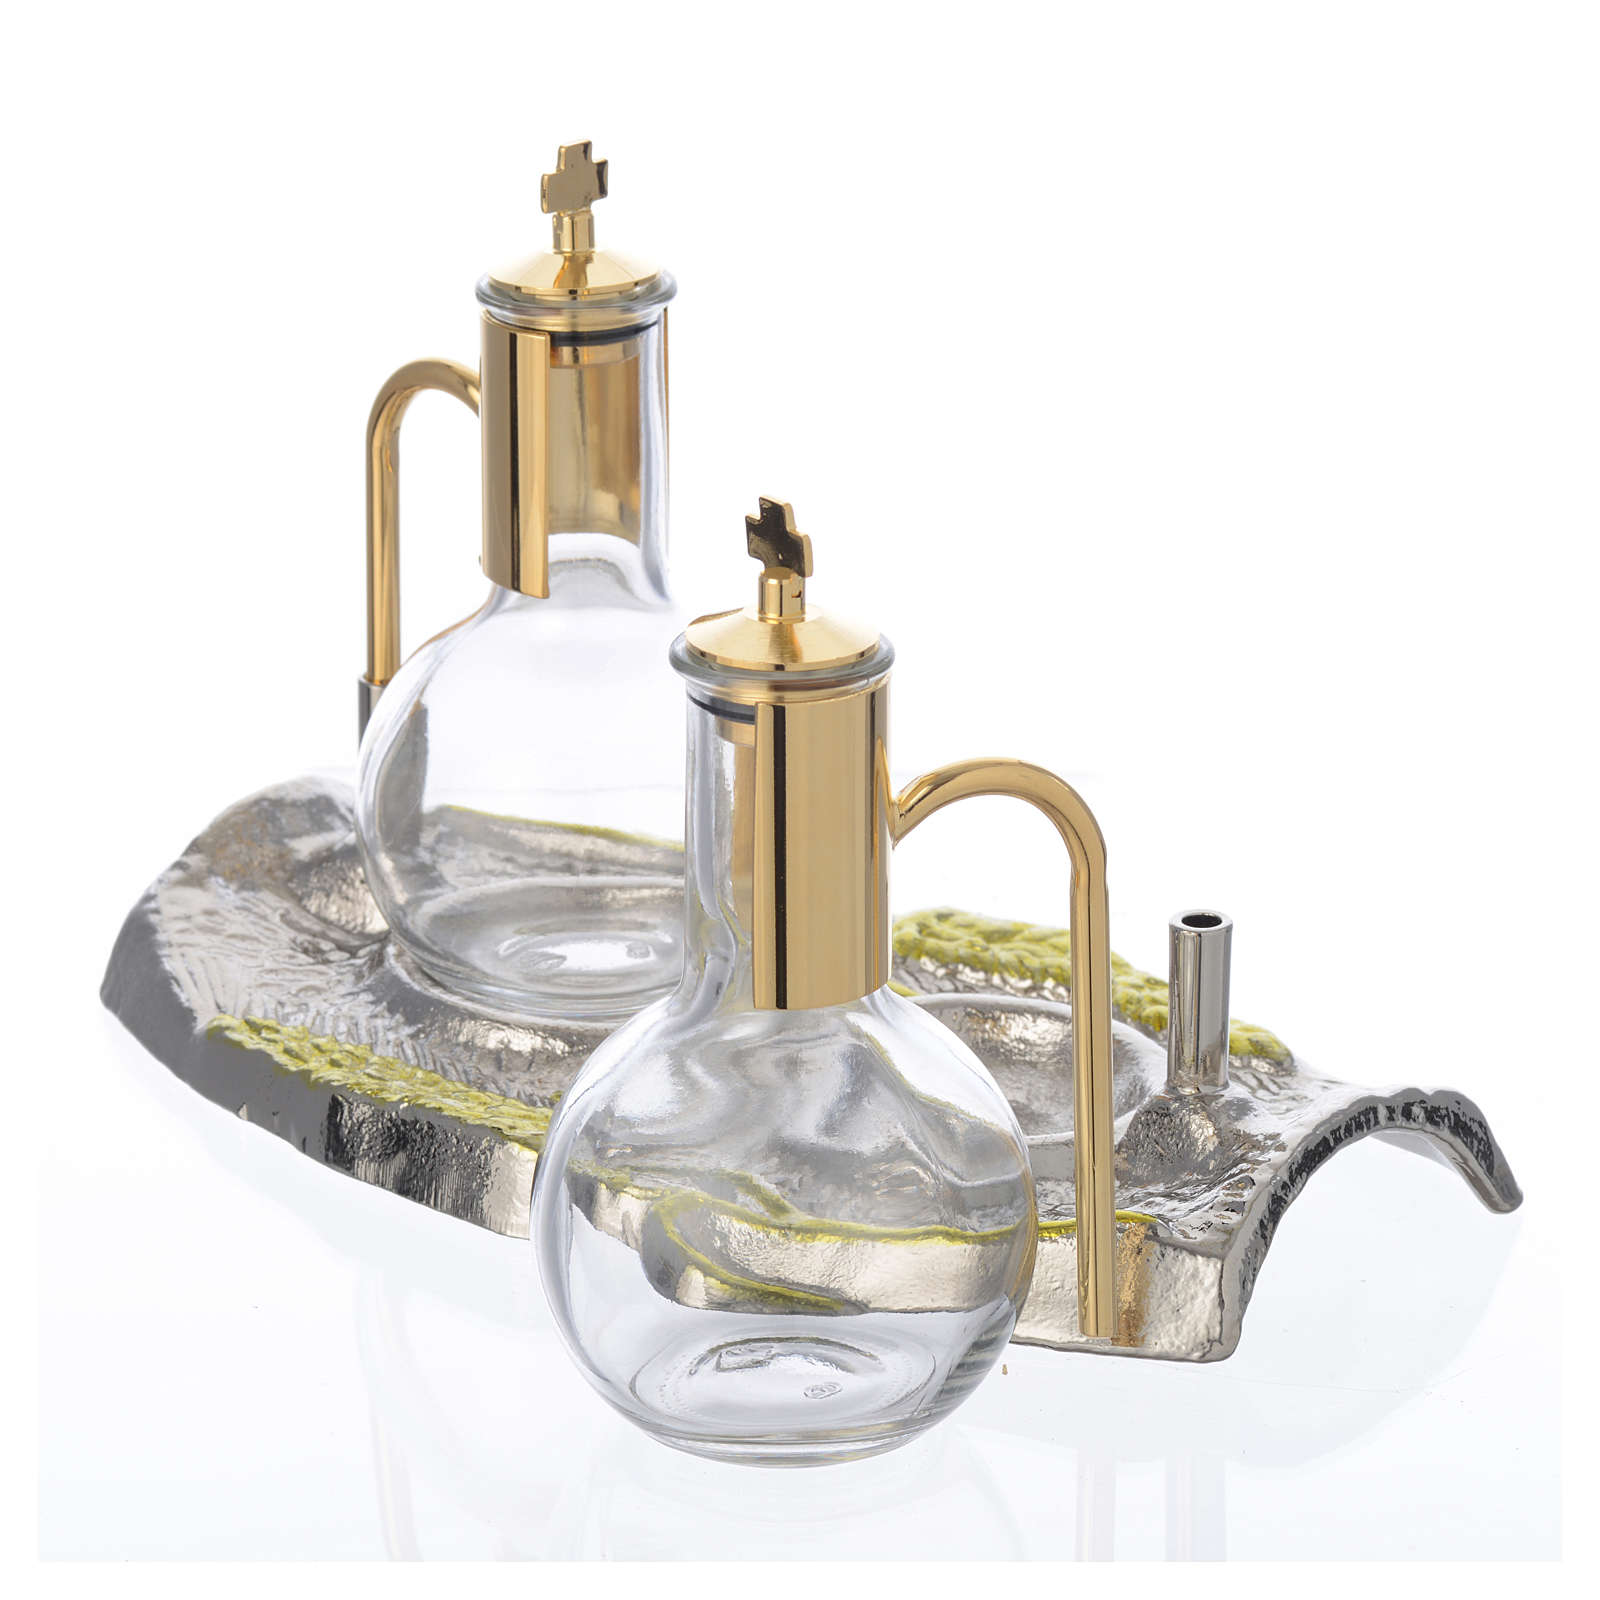 Cruet set with brass tray, wheat model 4